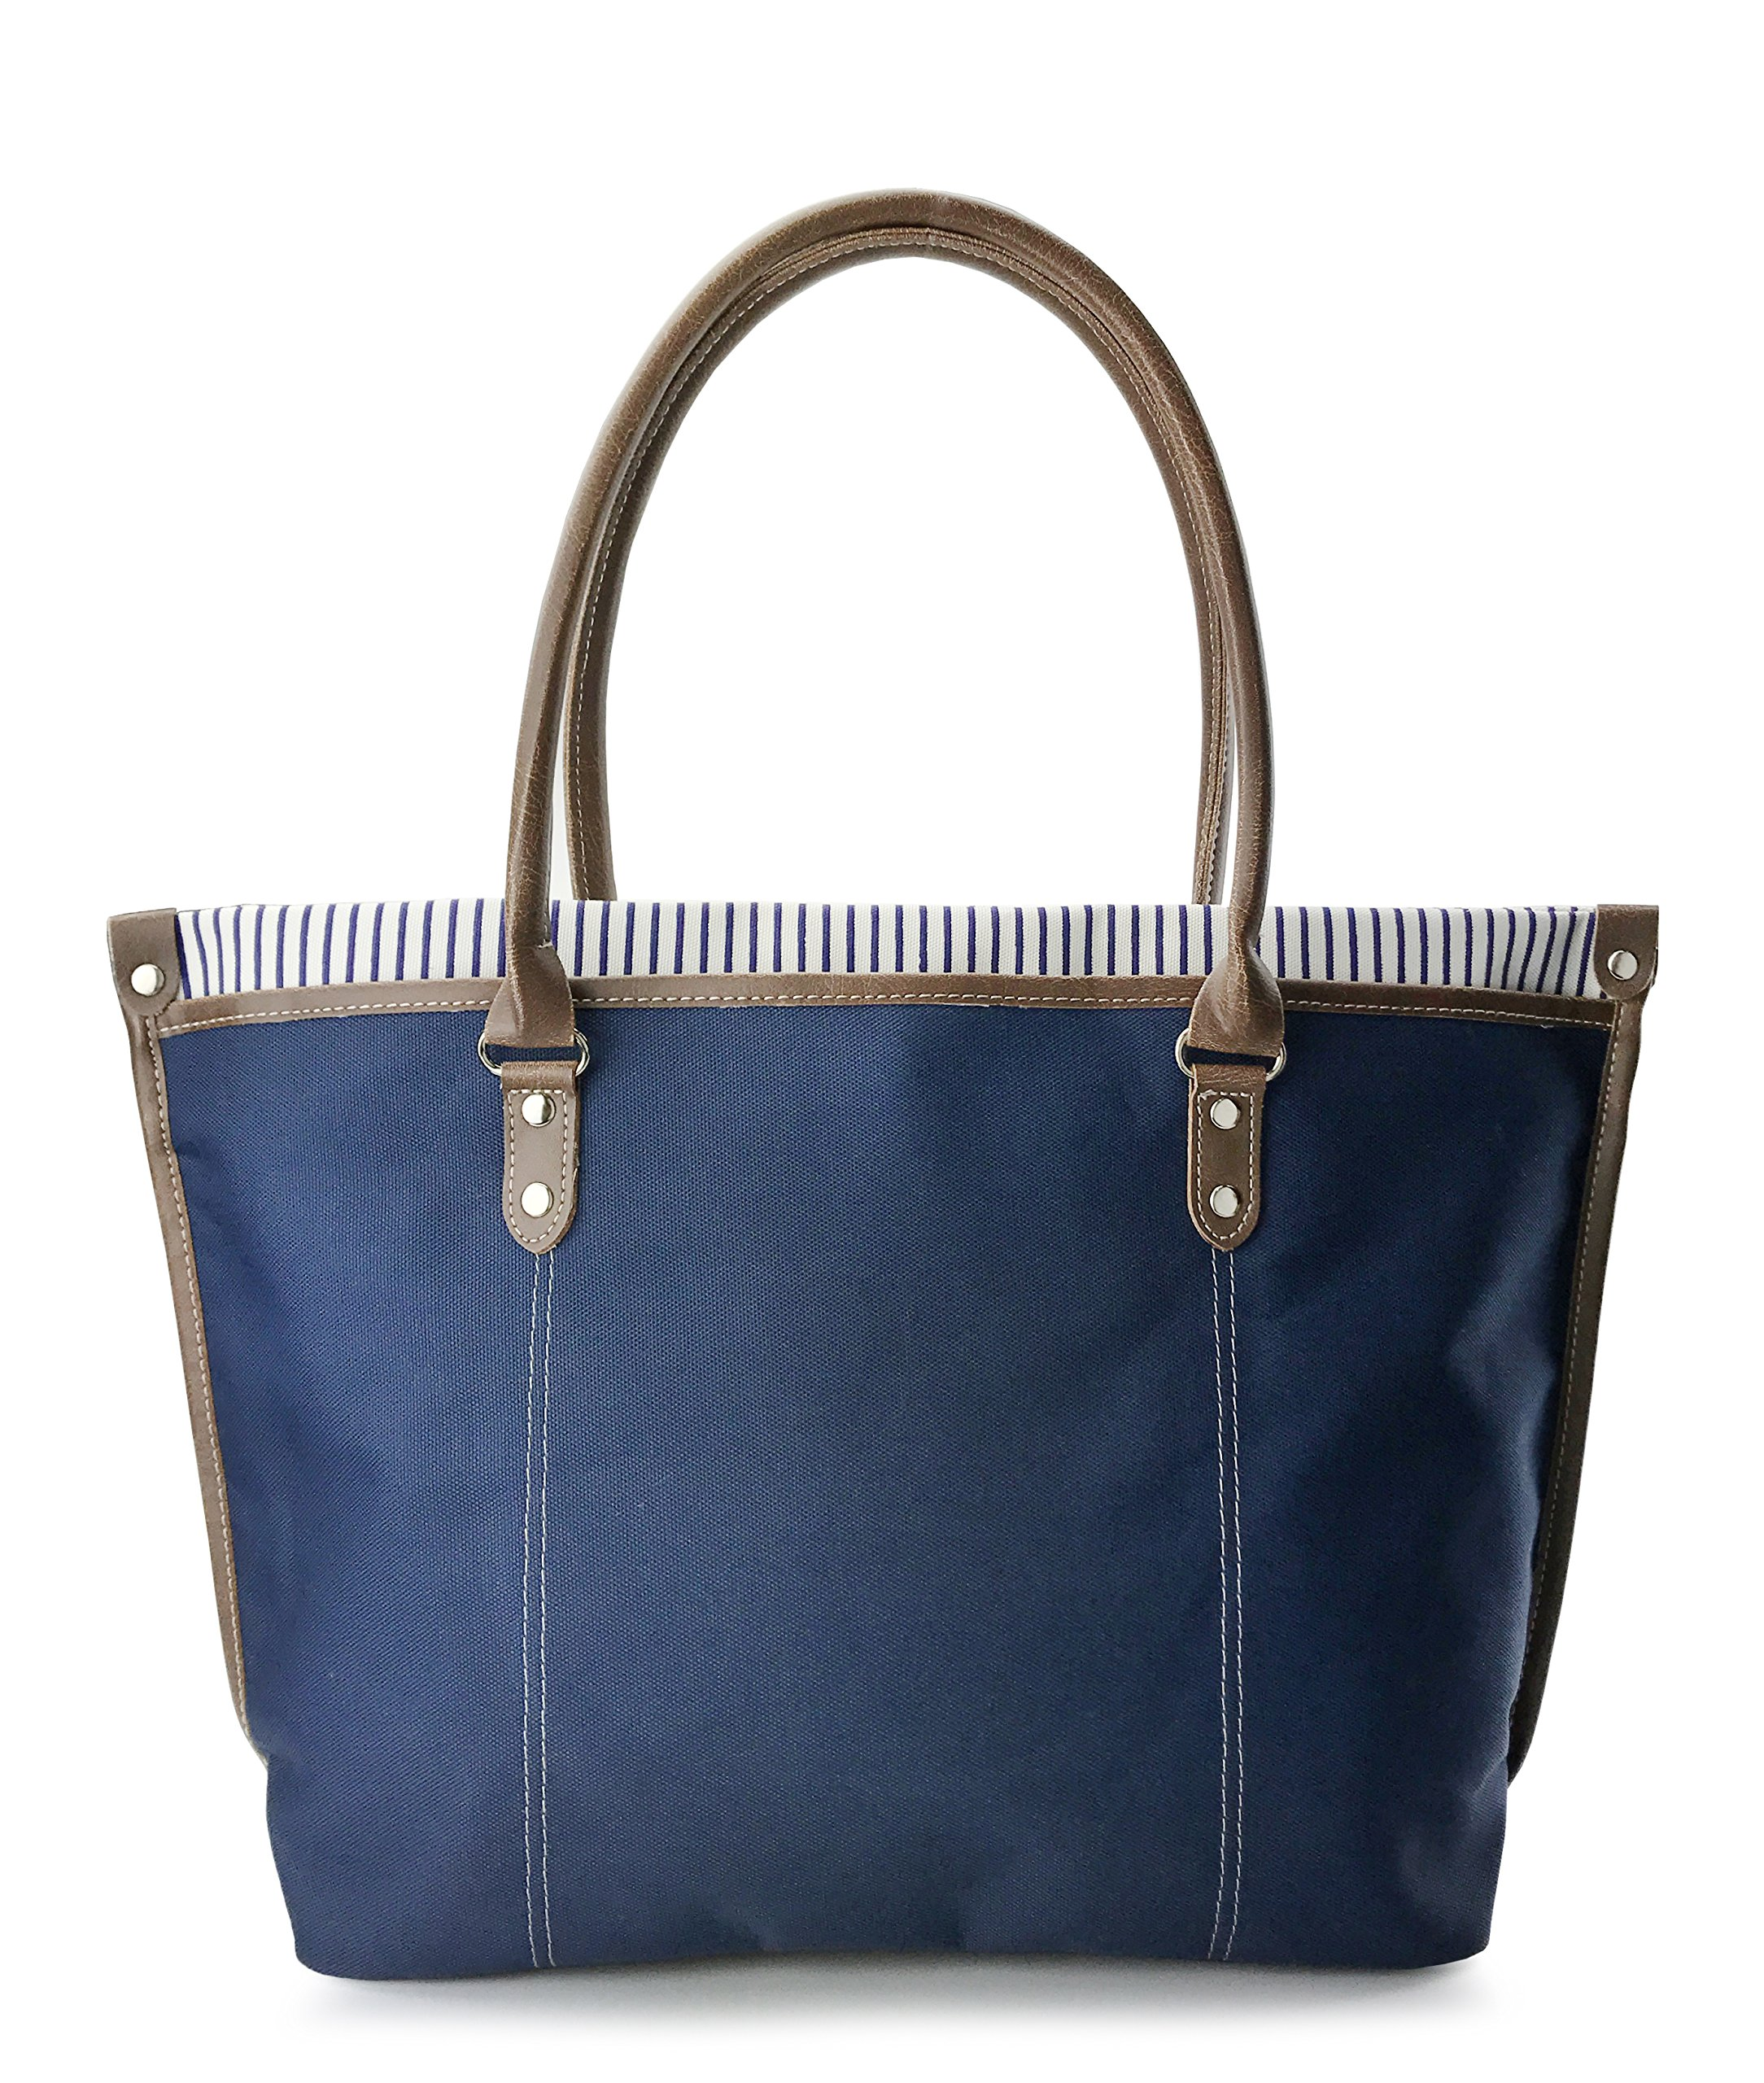 Commute Nylon Tote Womens Shoulder Handbag (Navy) by Hoxis